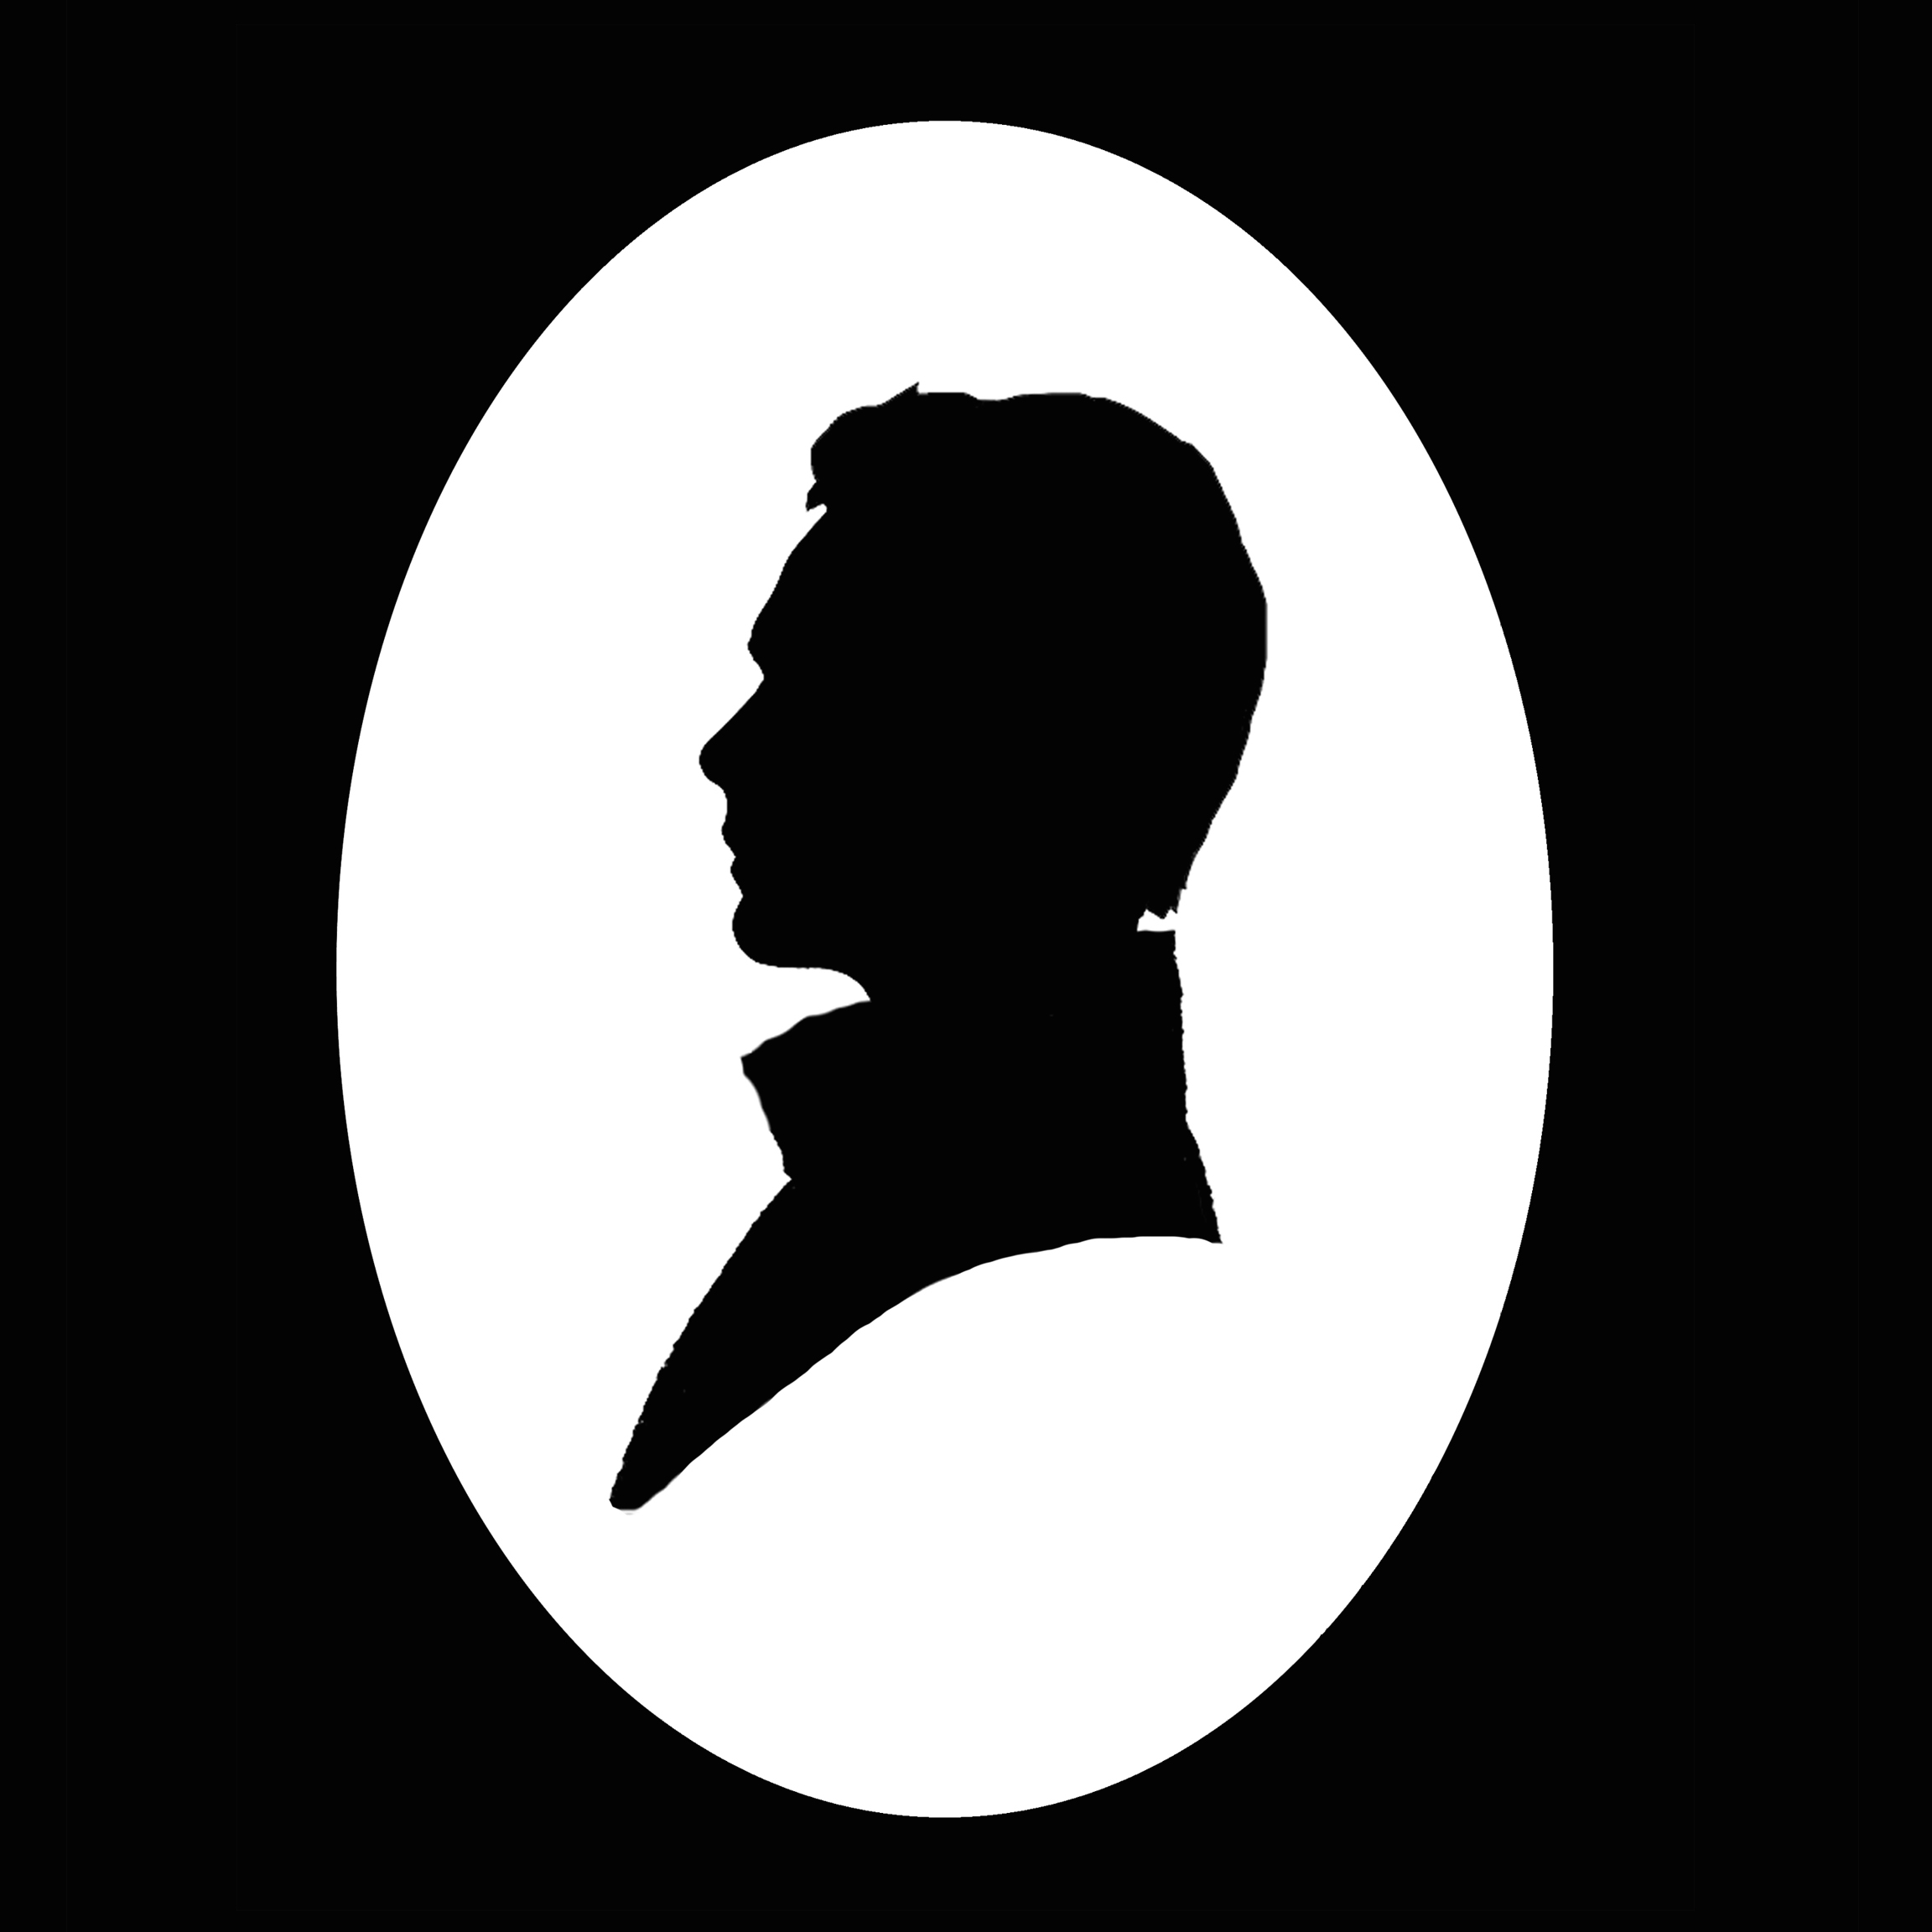 Silhouette Portrait of the Artist as a Young Man